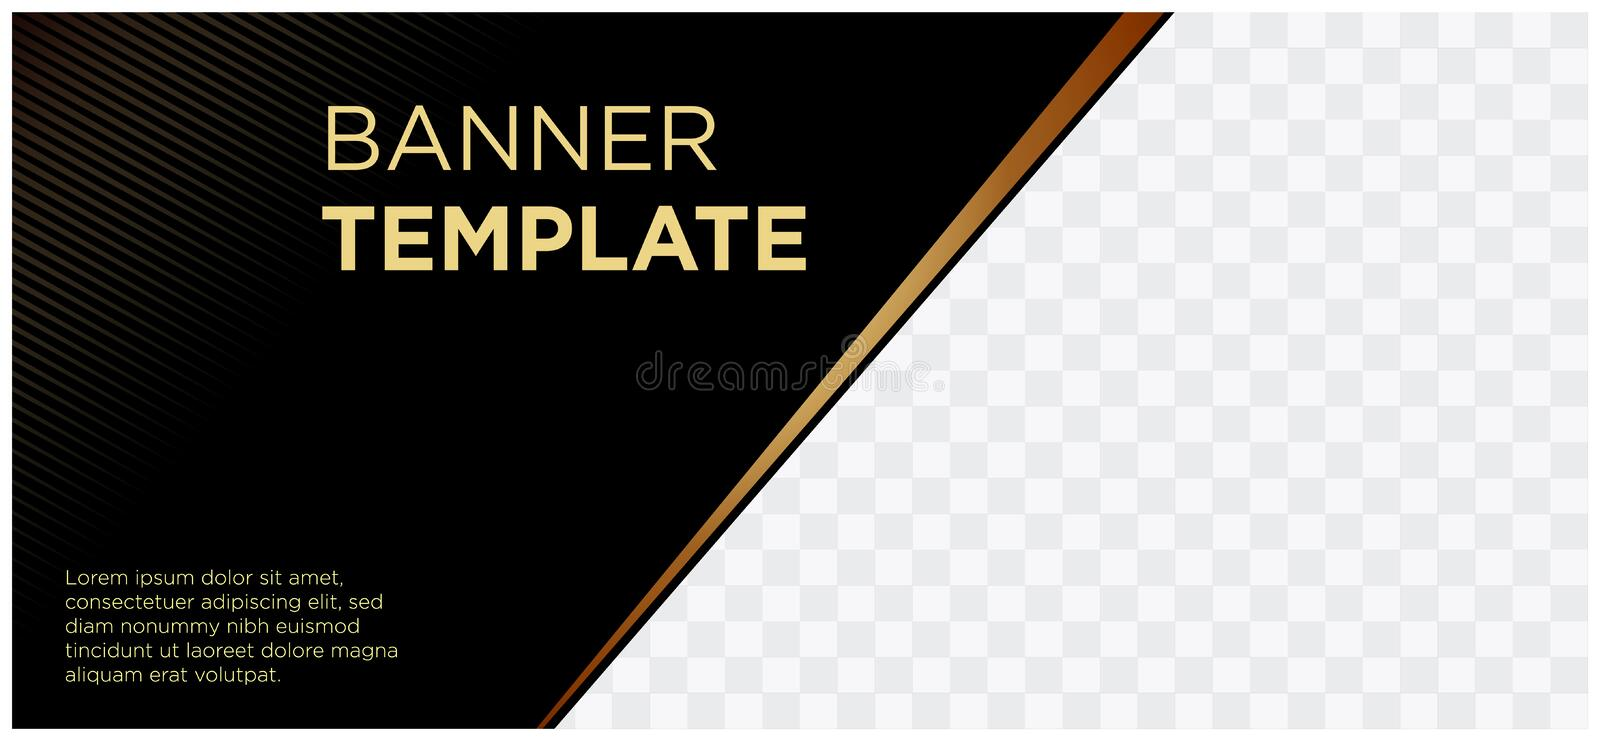 Banners black and gold header website company commercial landscape-06 stock photography